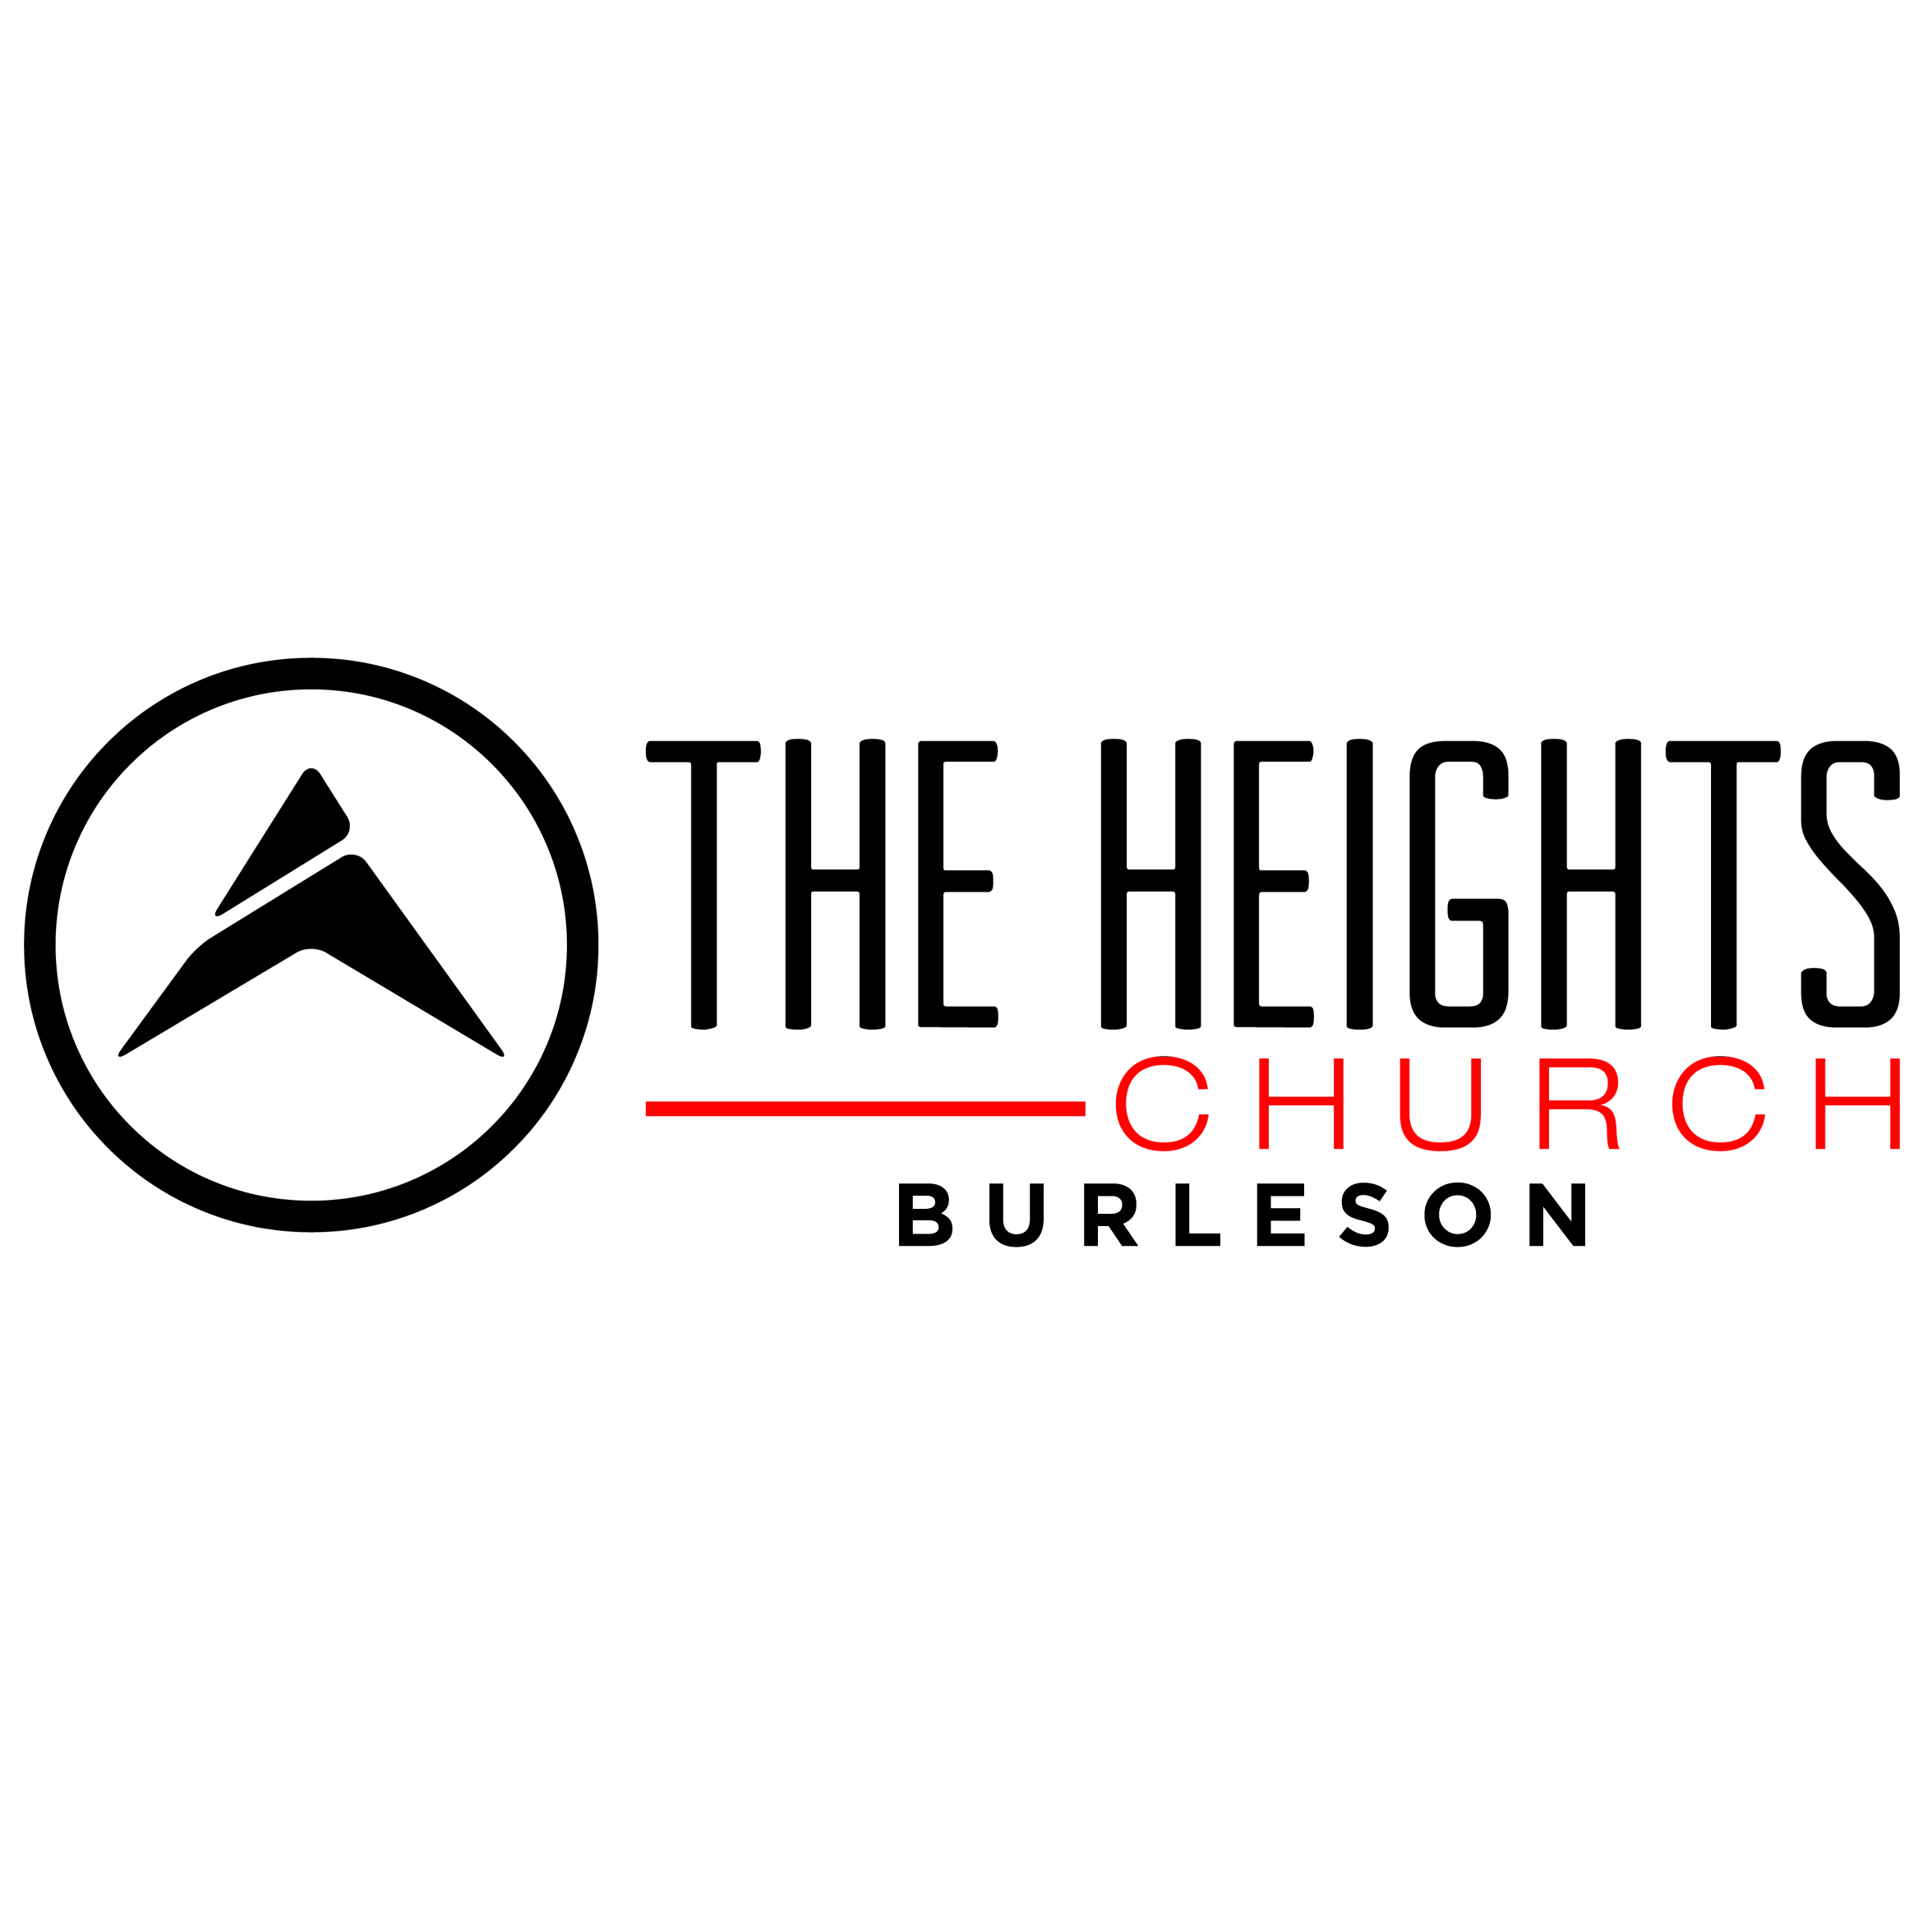 The Heights Church Burleson